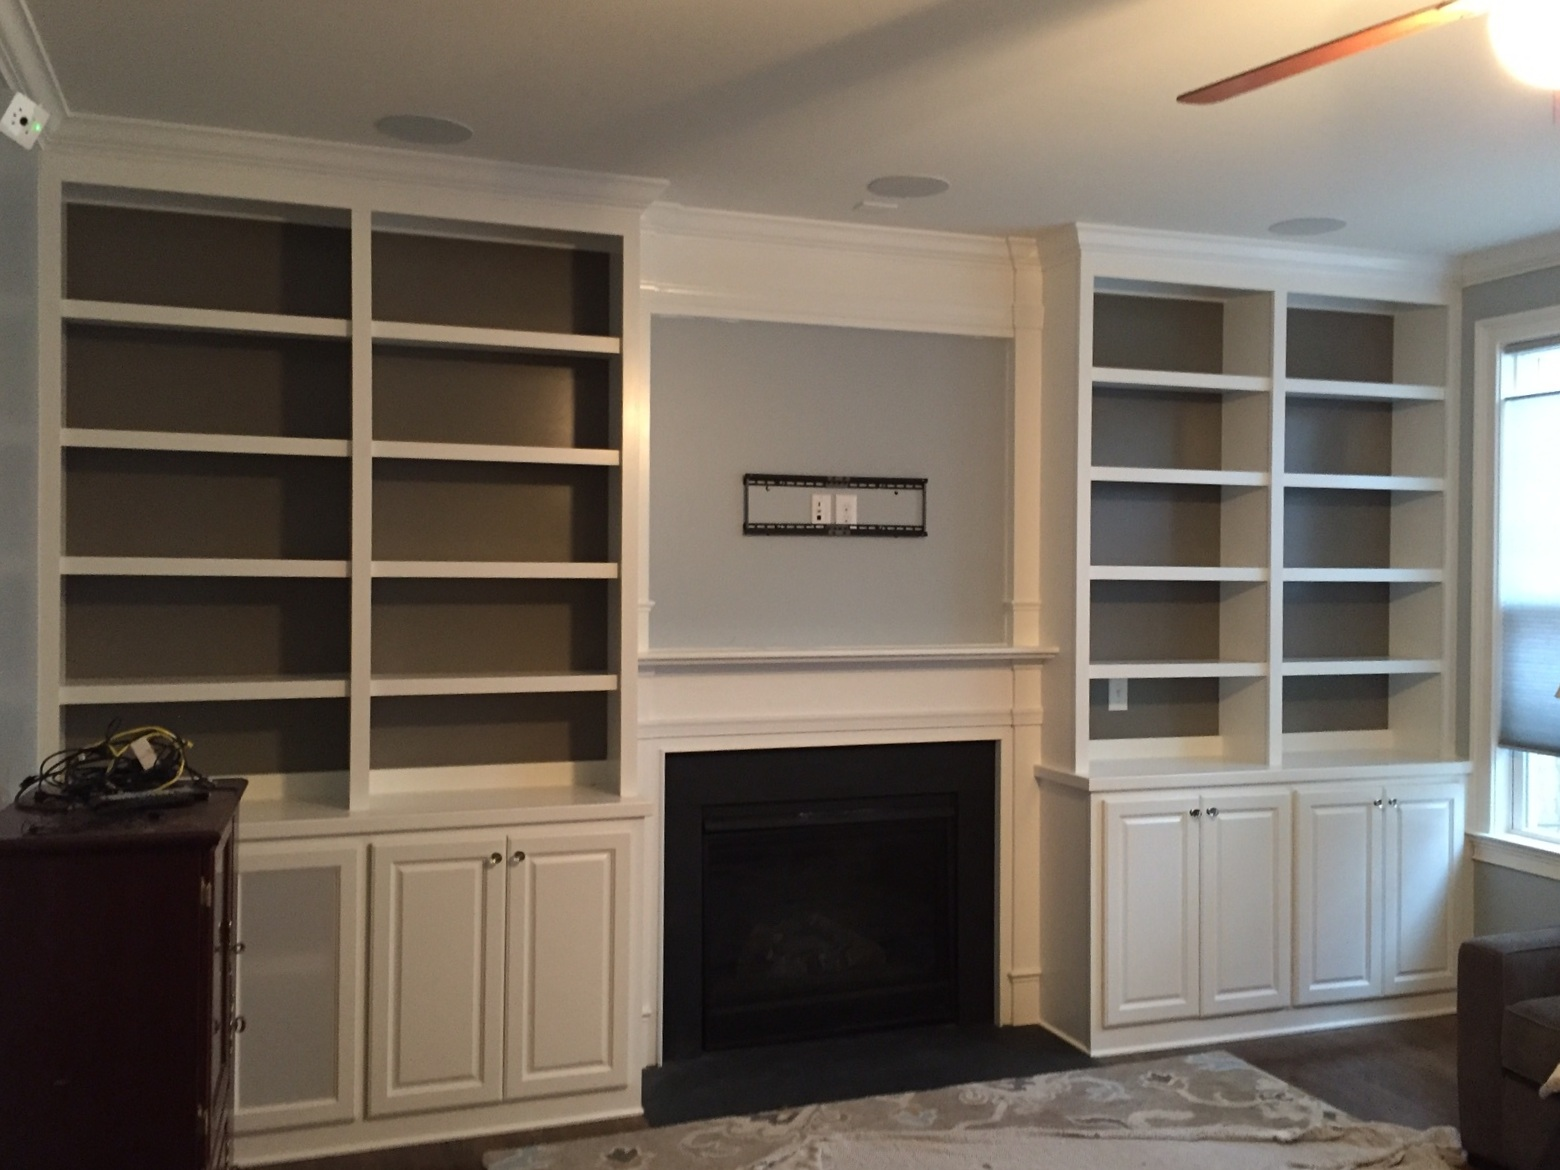 Fireplace Built-Ins with Adjustable Shelves, Raised Panel Doors, Mesh Doors for Components, Accent Backer Color, and Crown